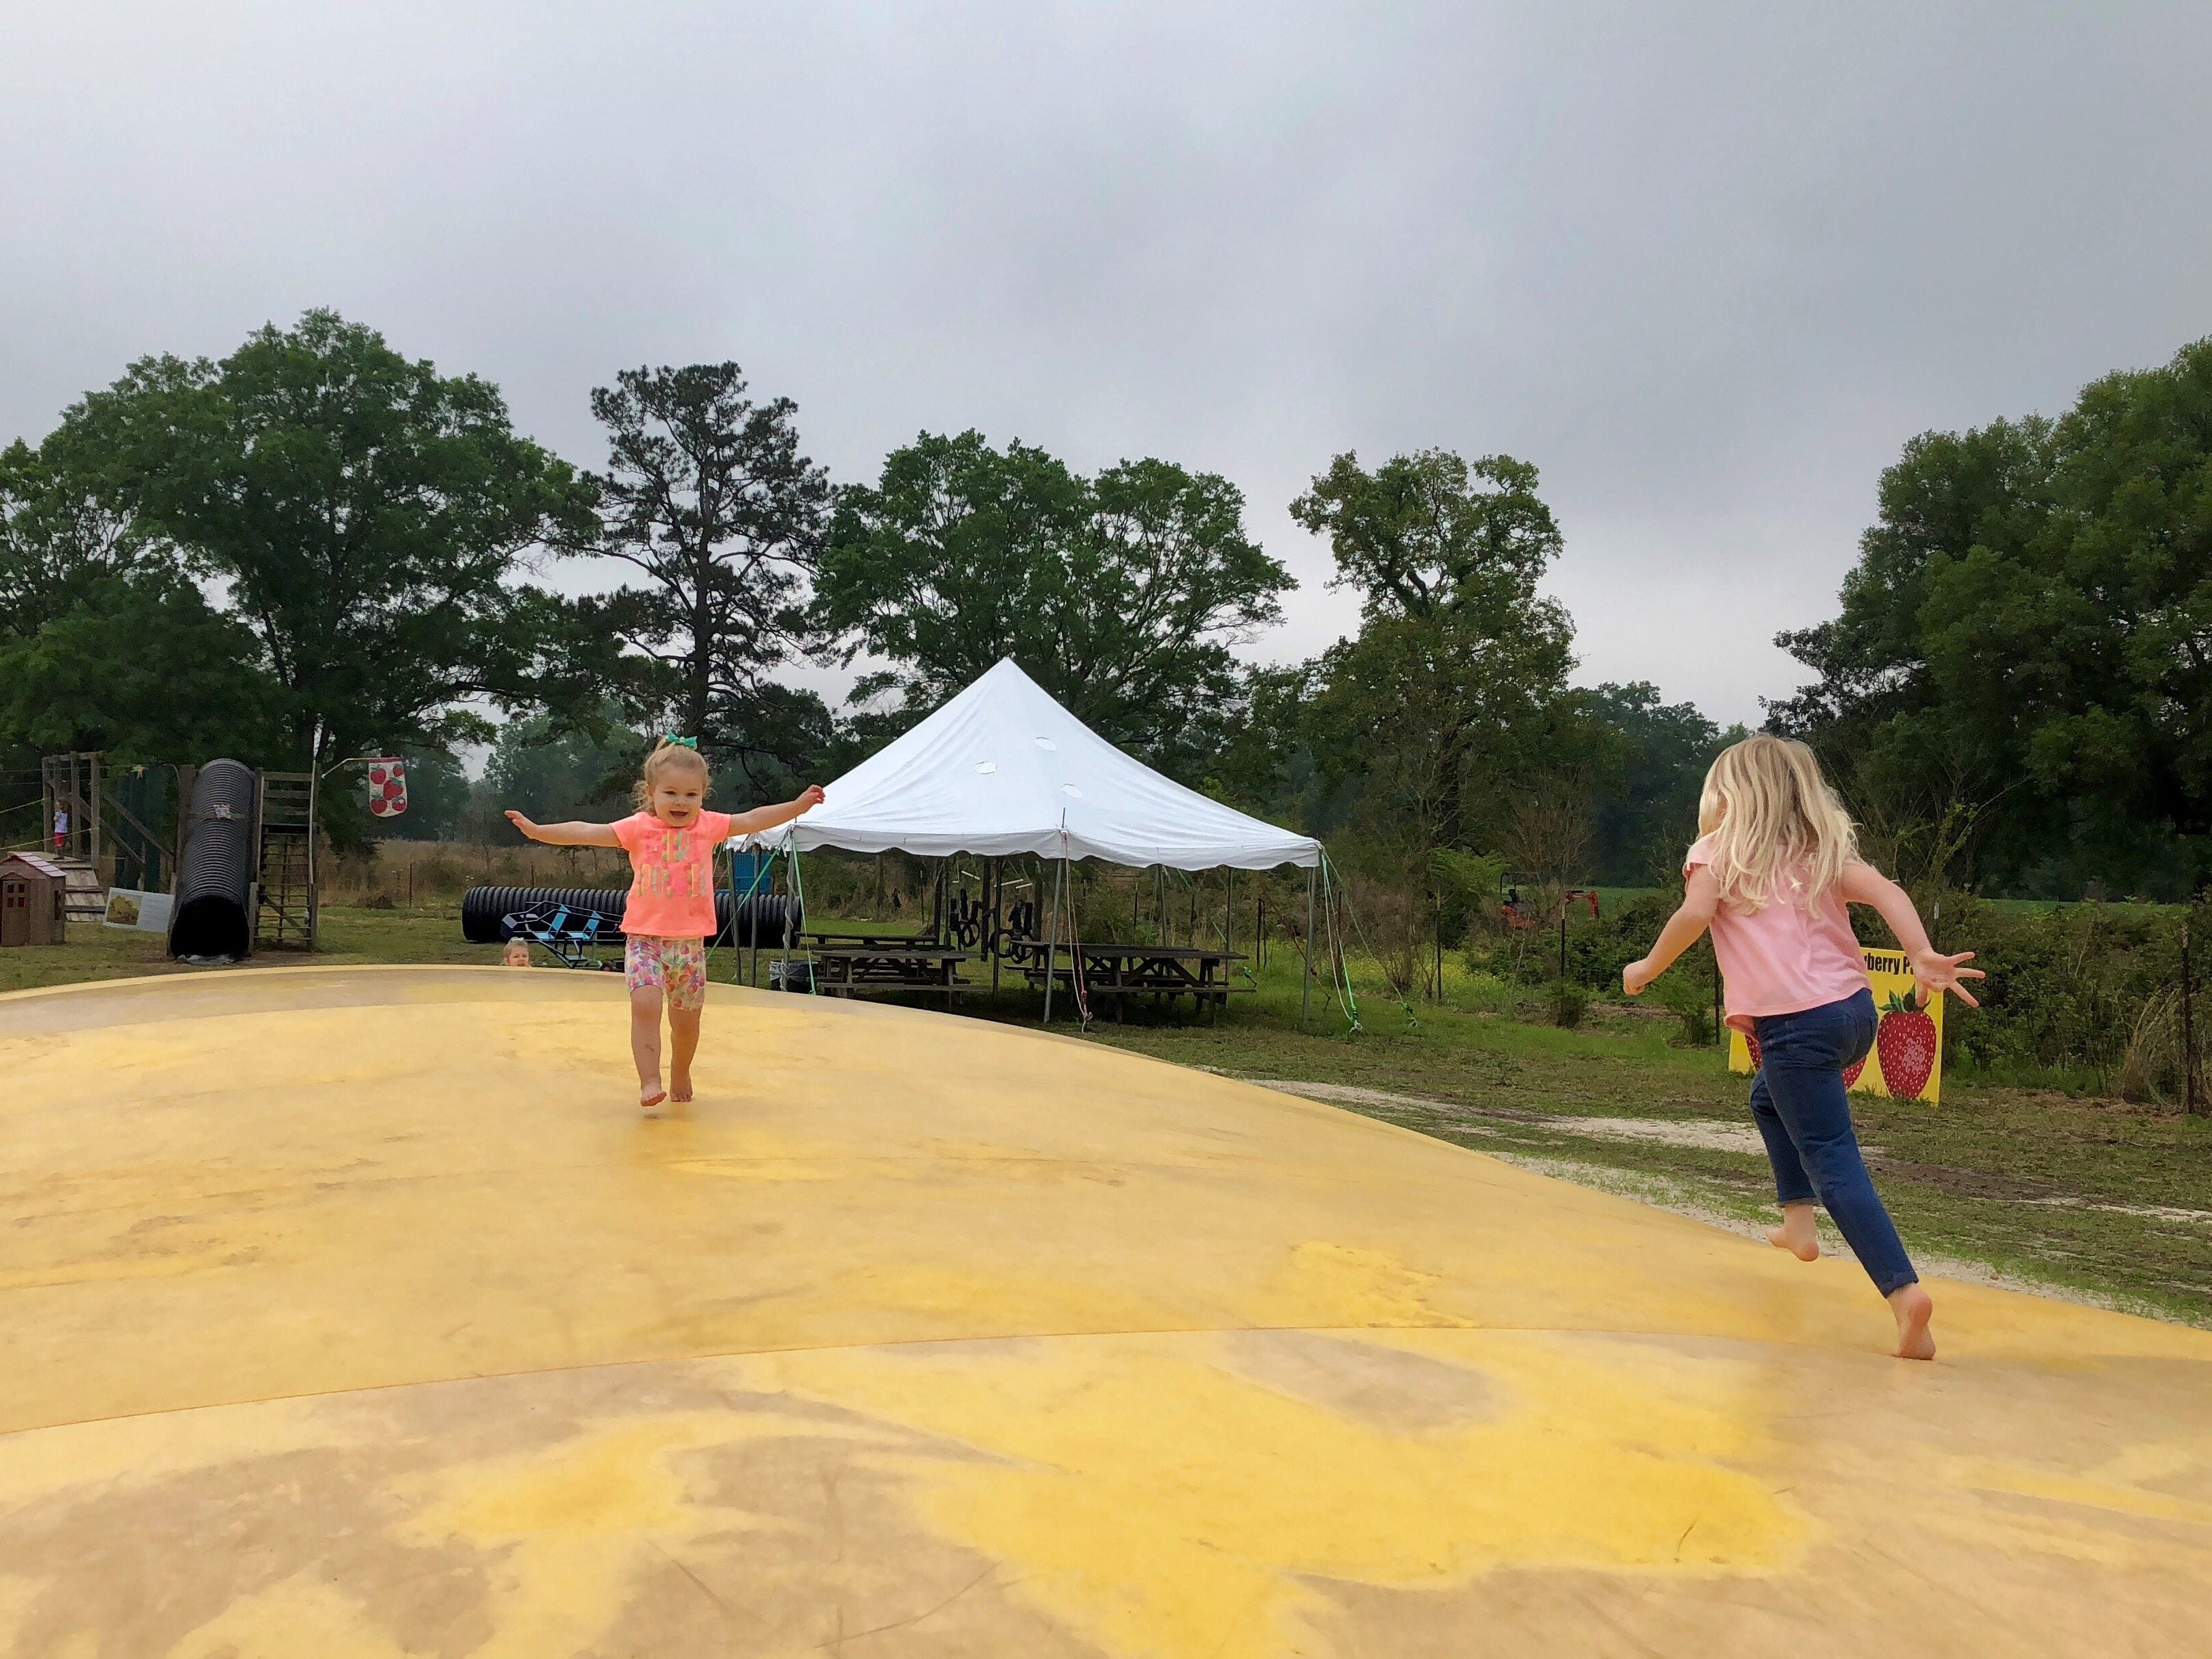 """Cousins Marie Guidry and Claire Ivy run and jump on the giant """"jumping pillow"""" at Mrs. Heather's Strawberry Farm in Albany, Louisiana, April 6."""